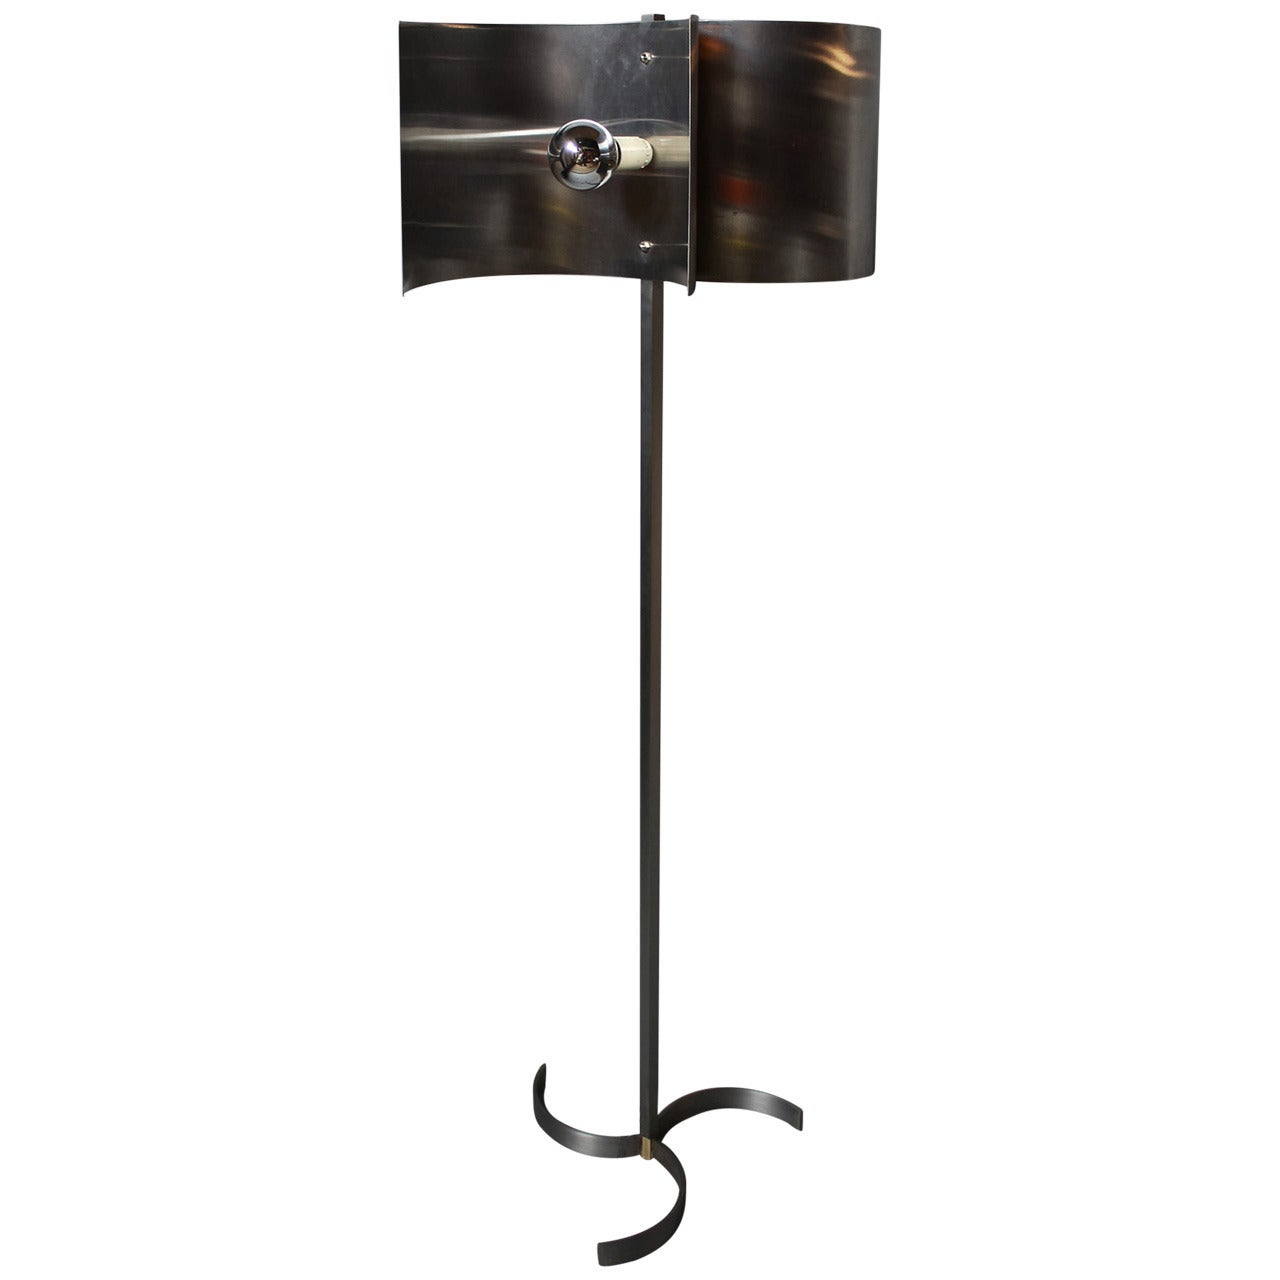 A French 1970s Metal and Stainless Steel Floor Lamp